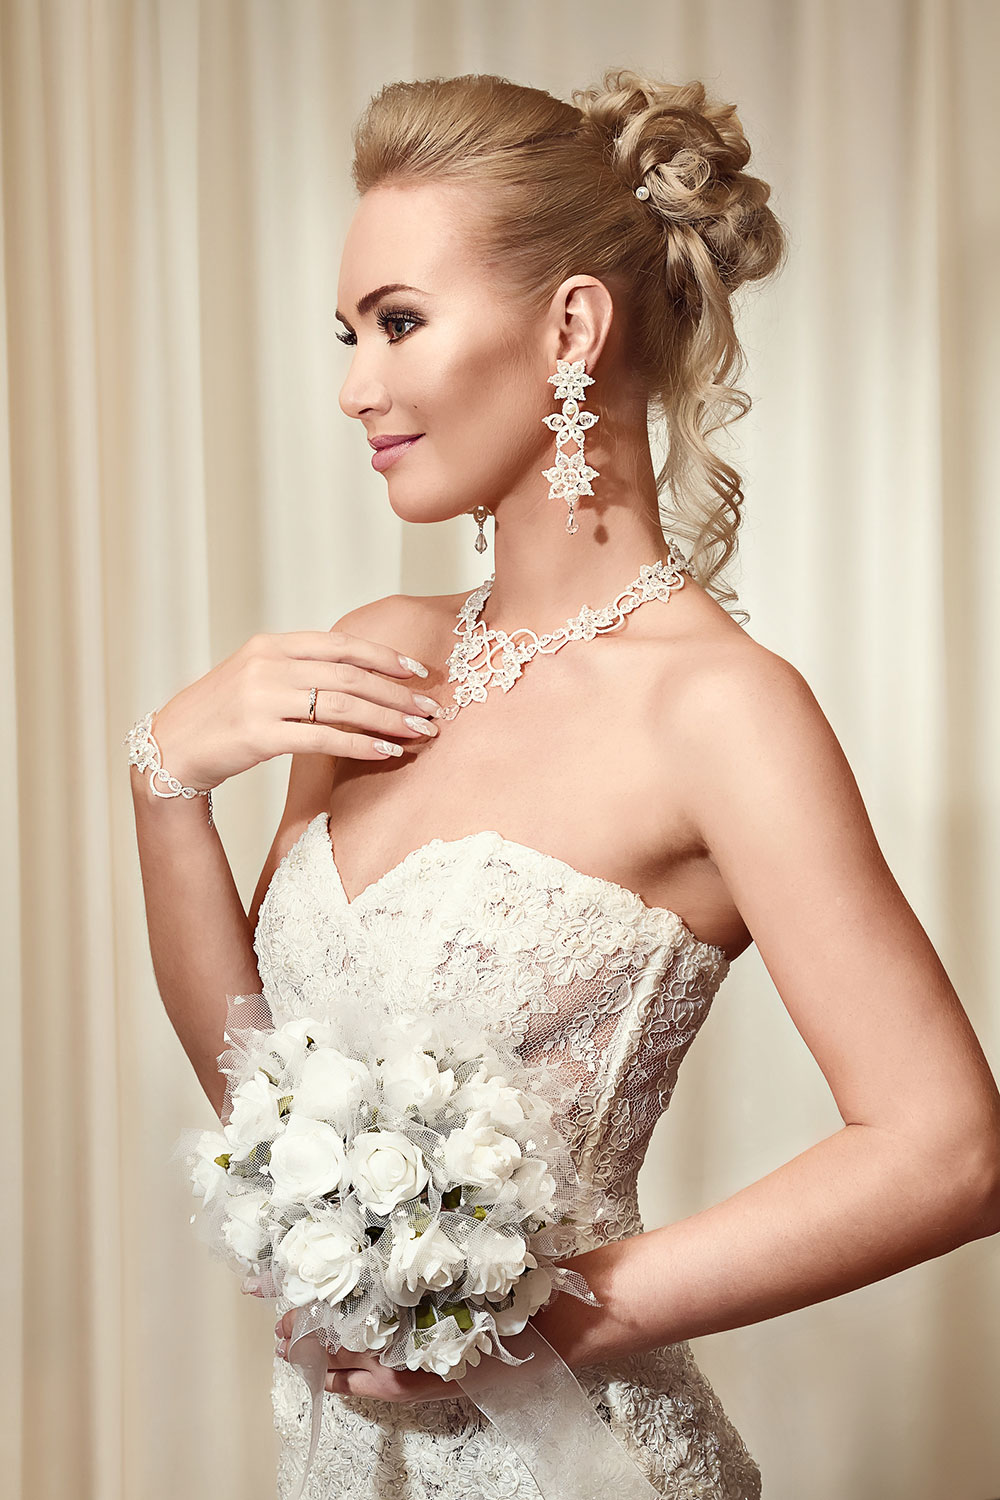 Gorgeous Wedding Hairstyles for ladies - LightUpMirrors.com